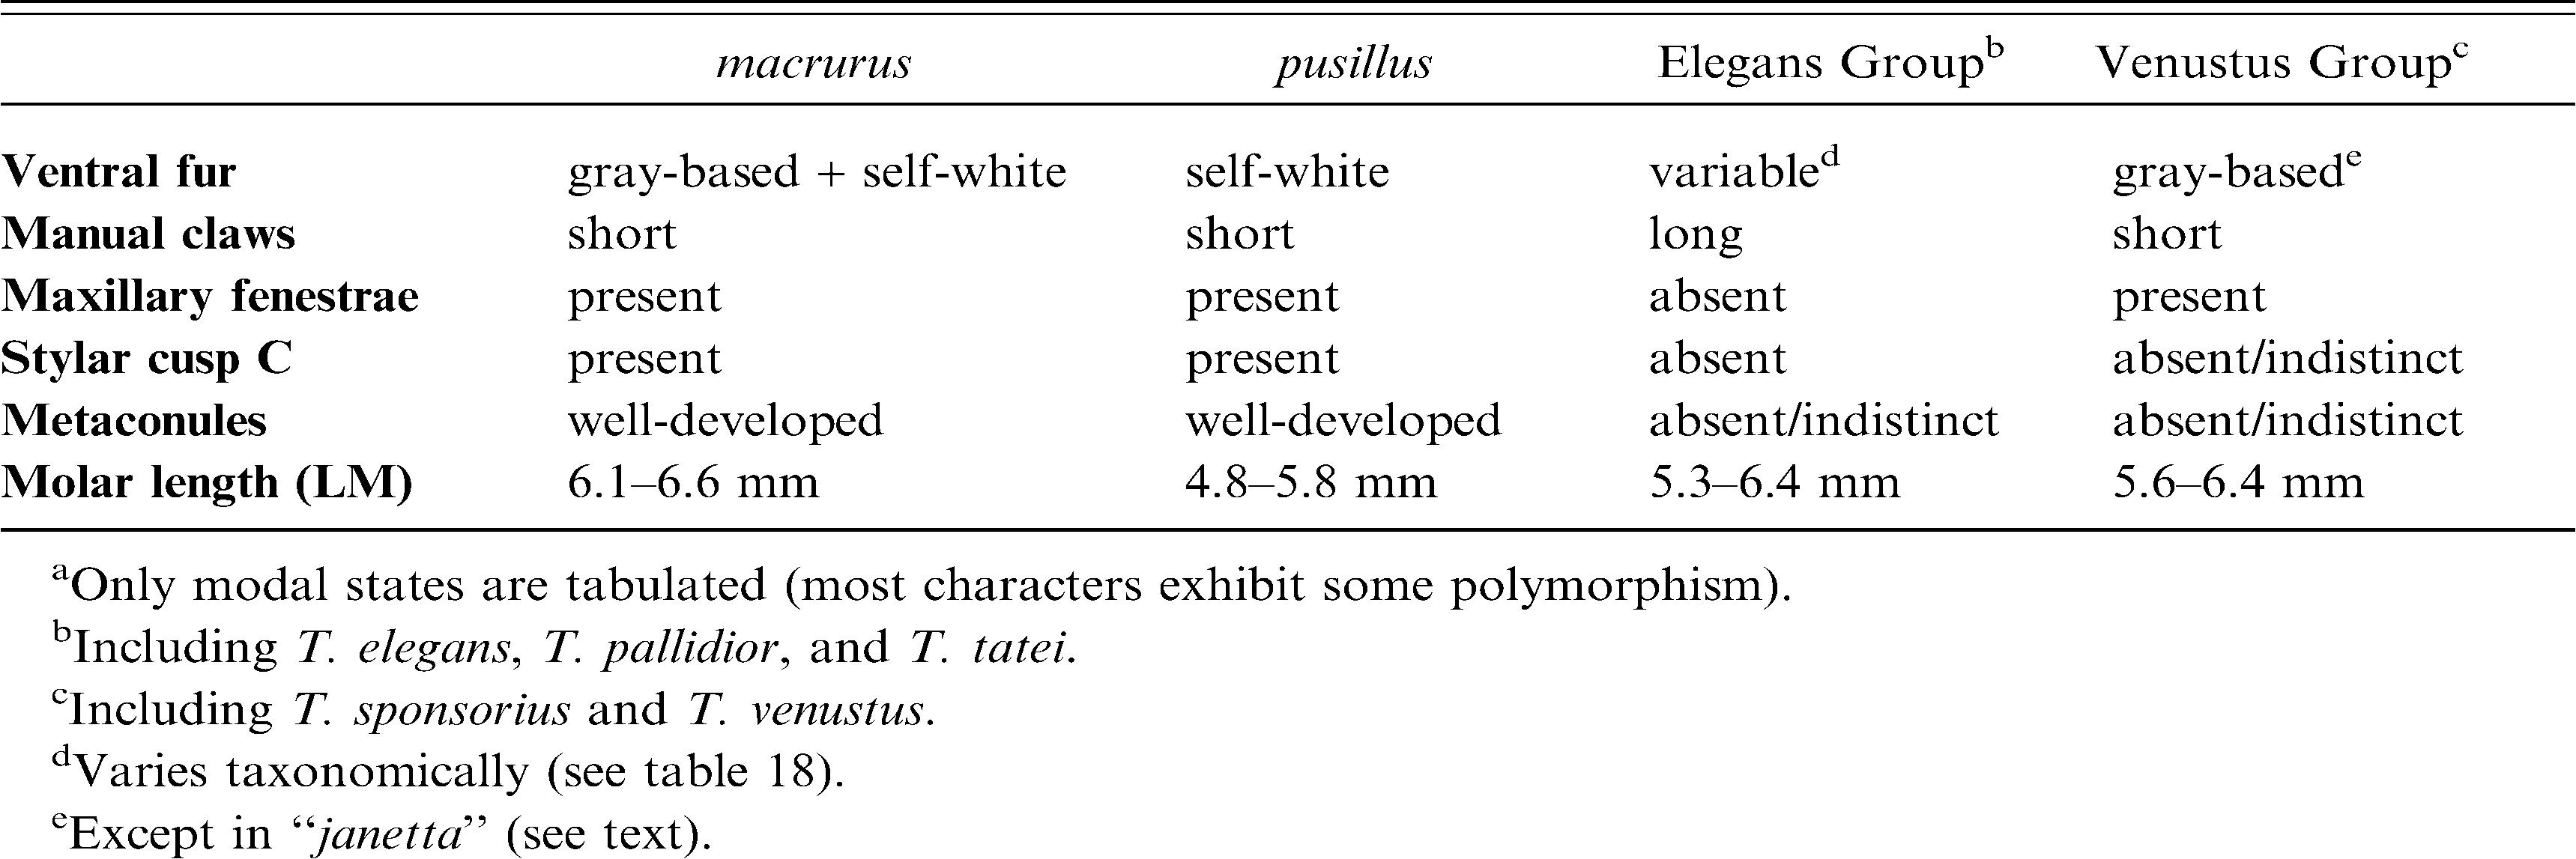 Species Limits and Phylogenetic Relationships in the Didelphid